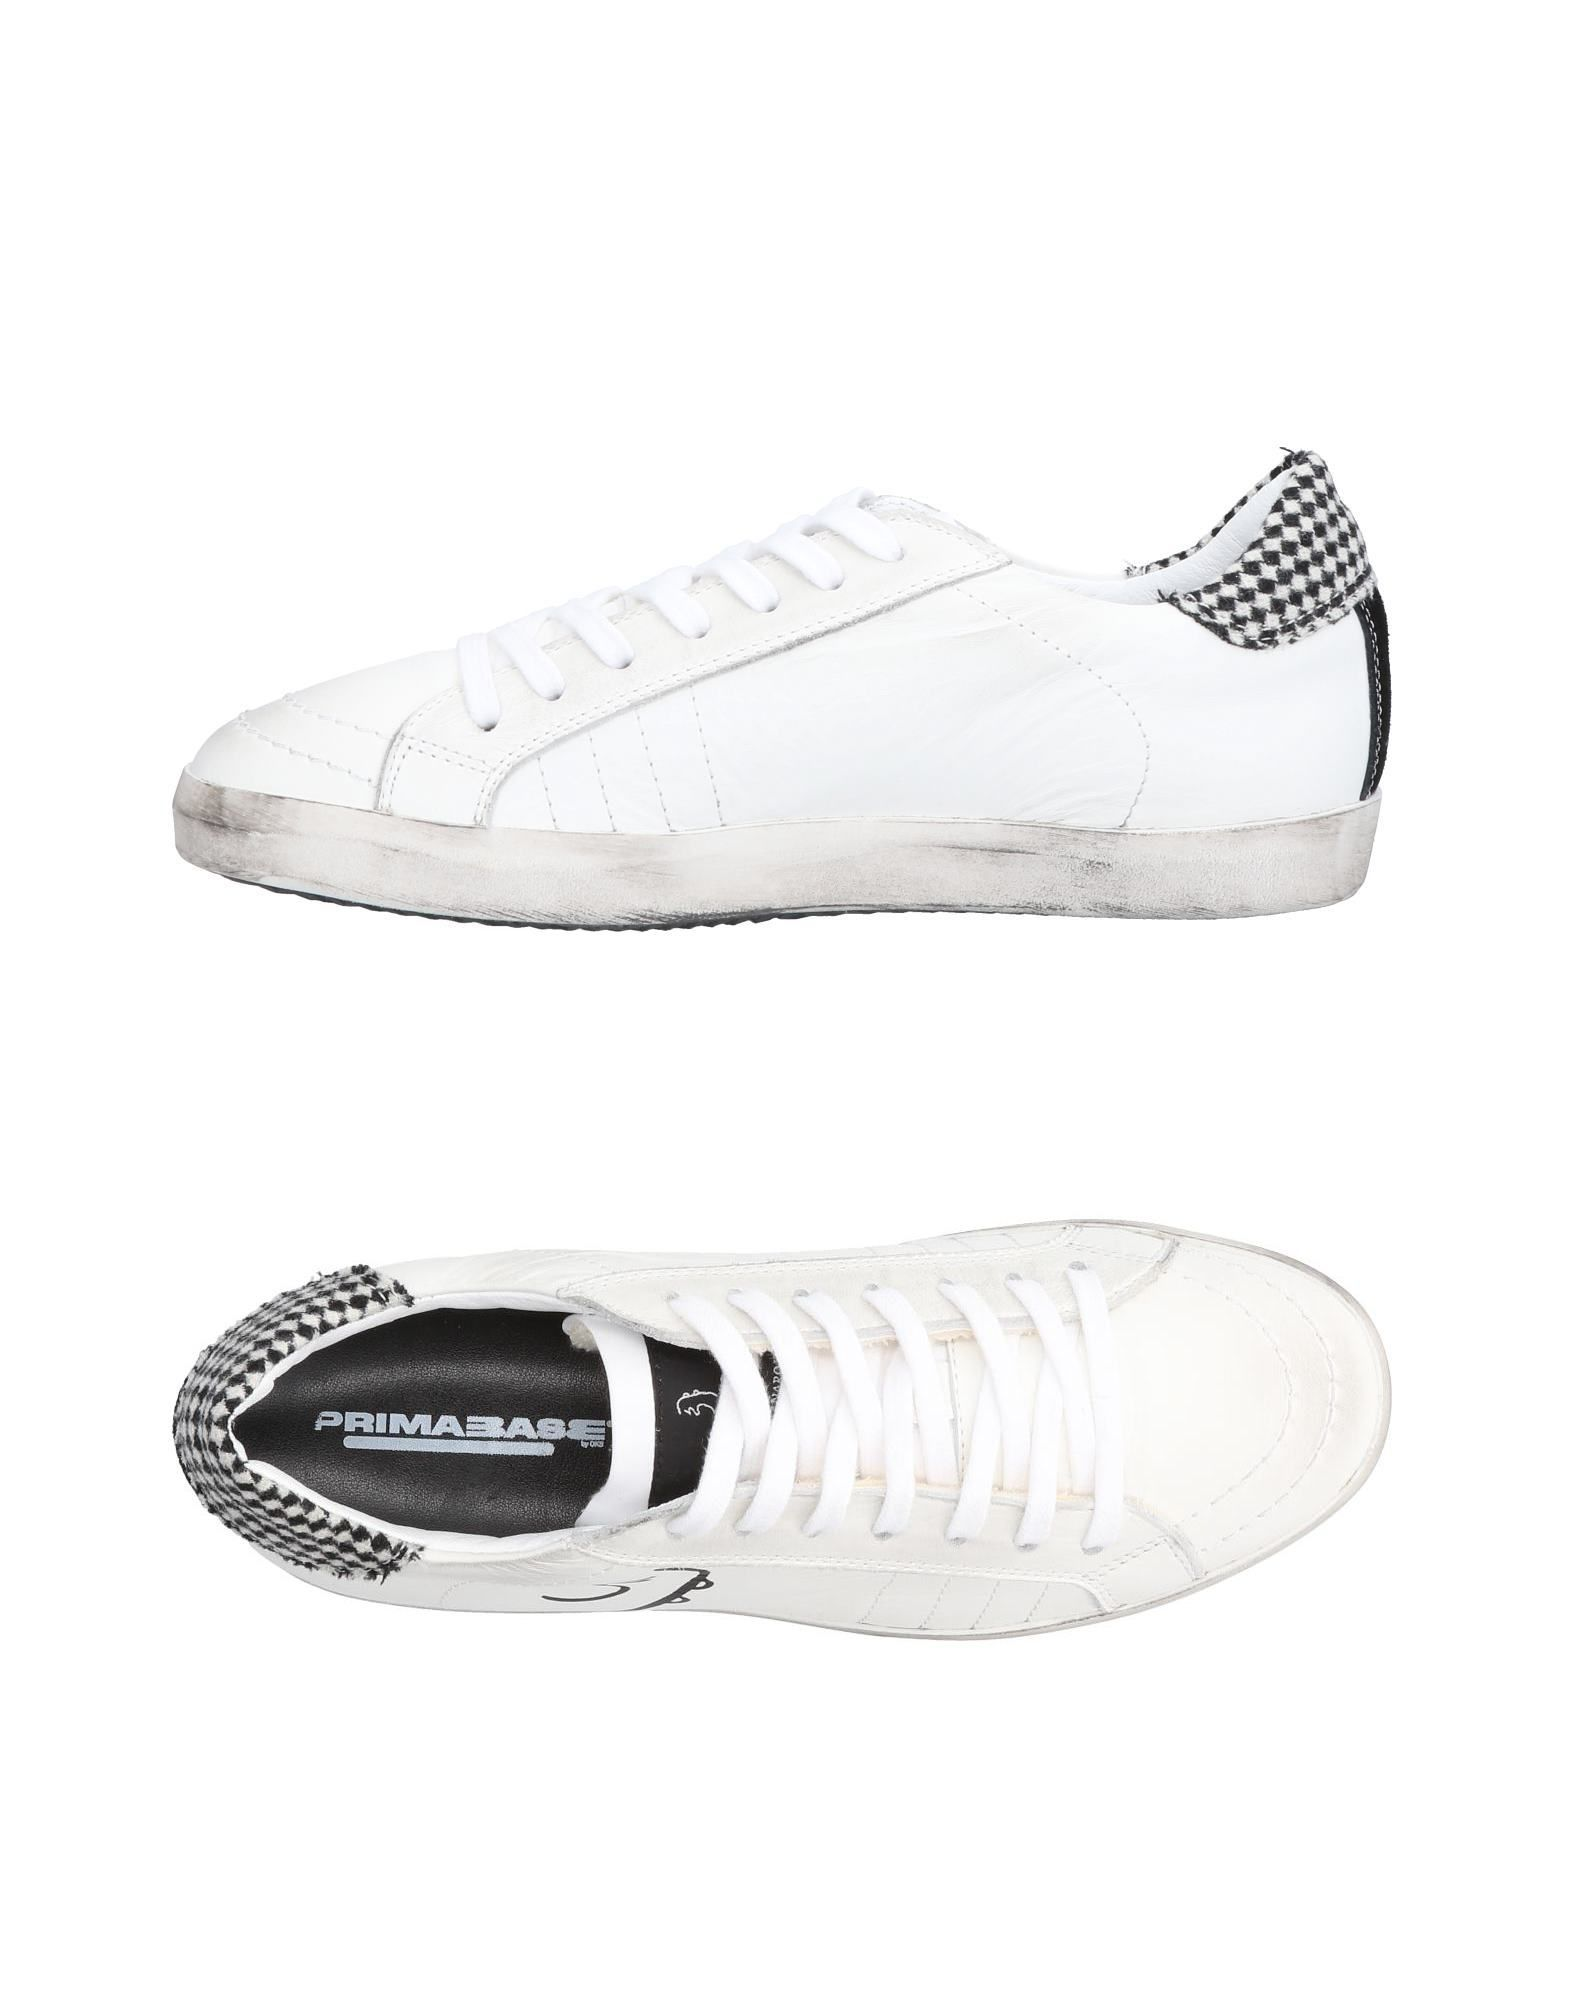 Moda Sneakers Primabase Donna - 11474905TW